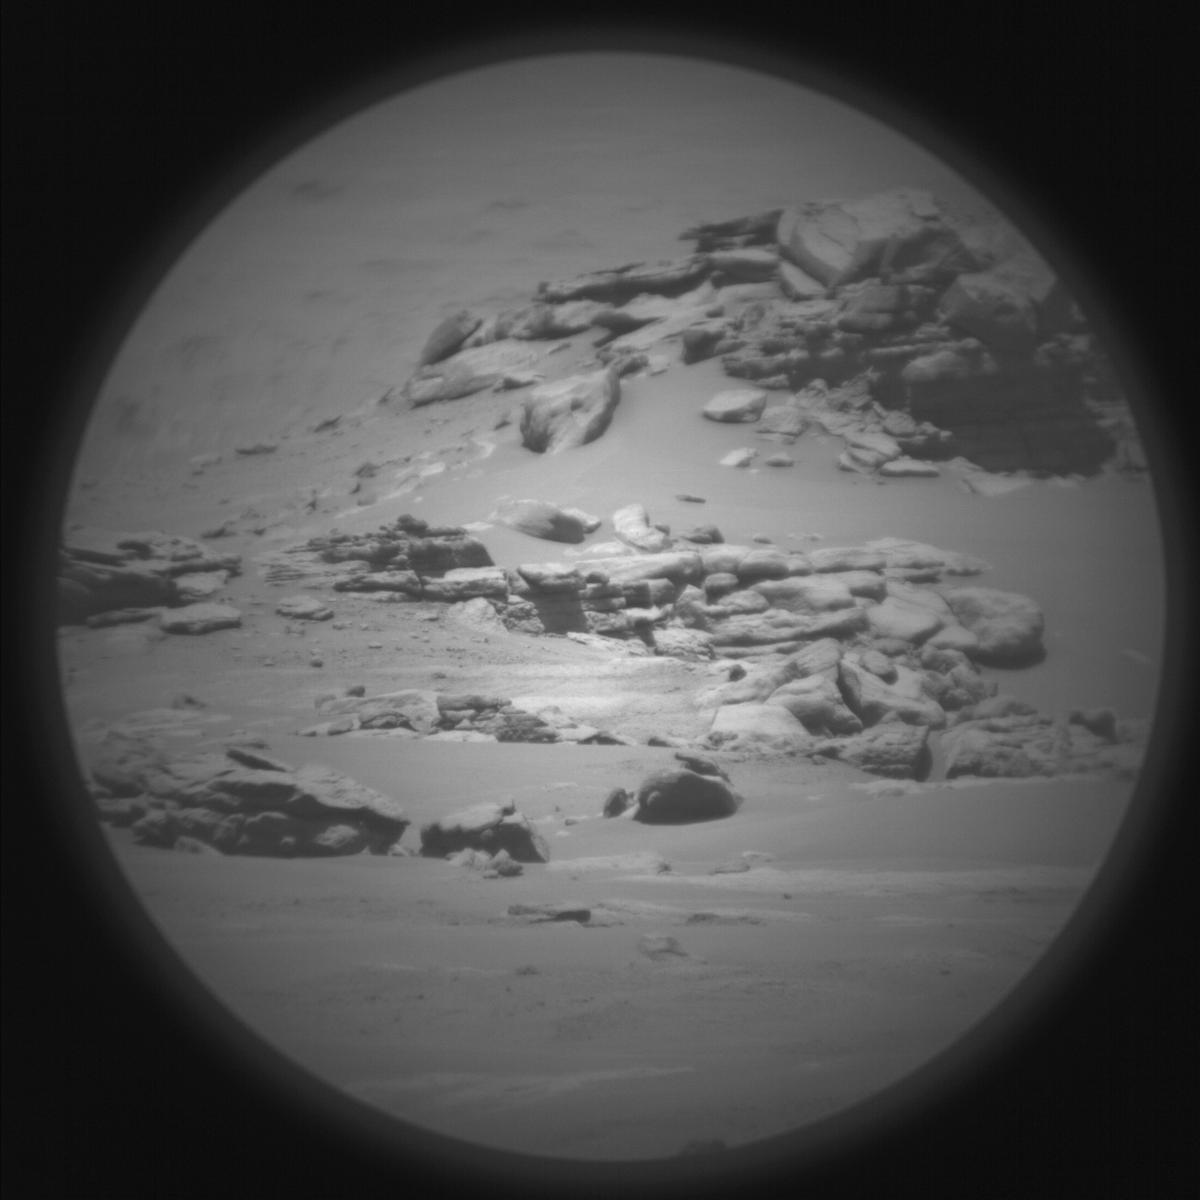 This image was taken by SUPERCAM_RMI onboard NASA's Mars rover Perseverance on Sol 120